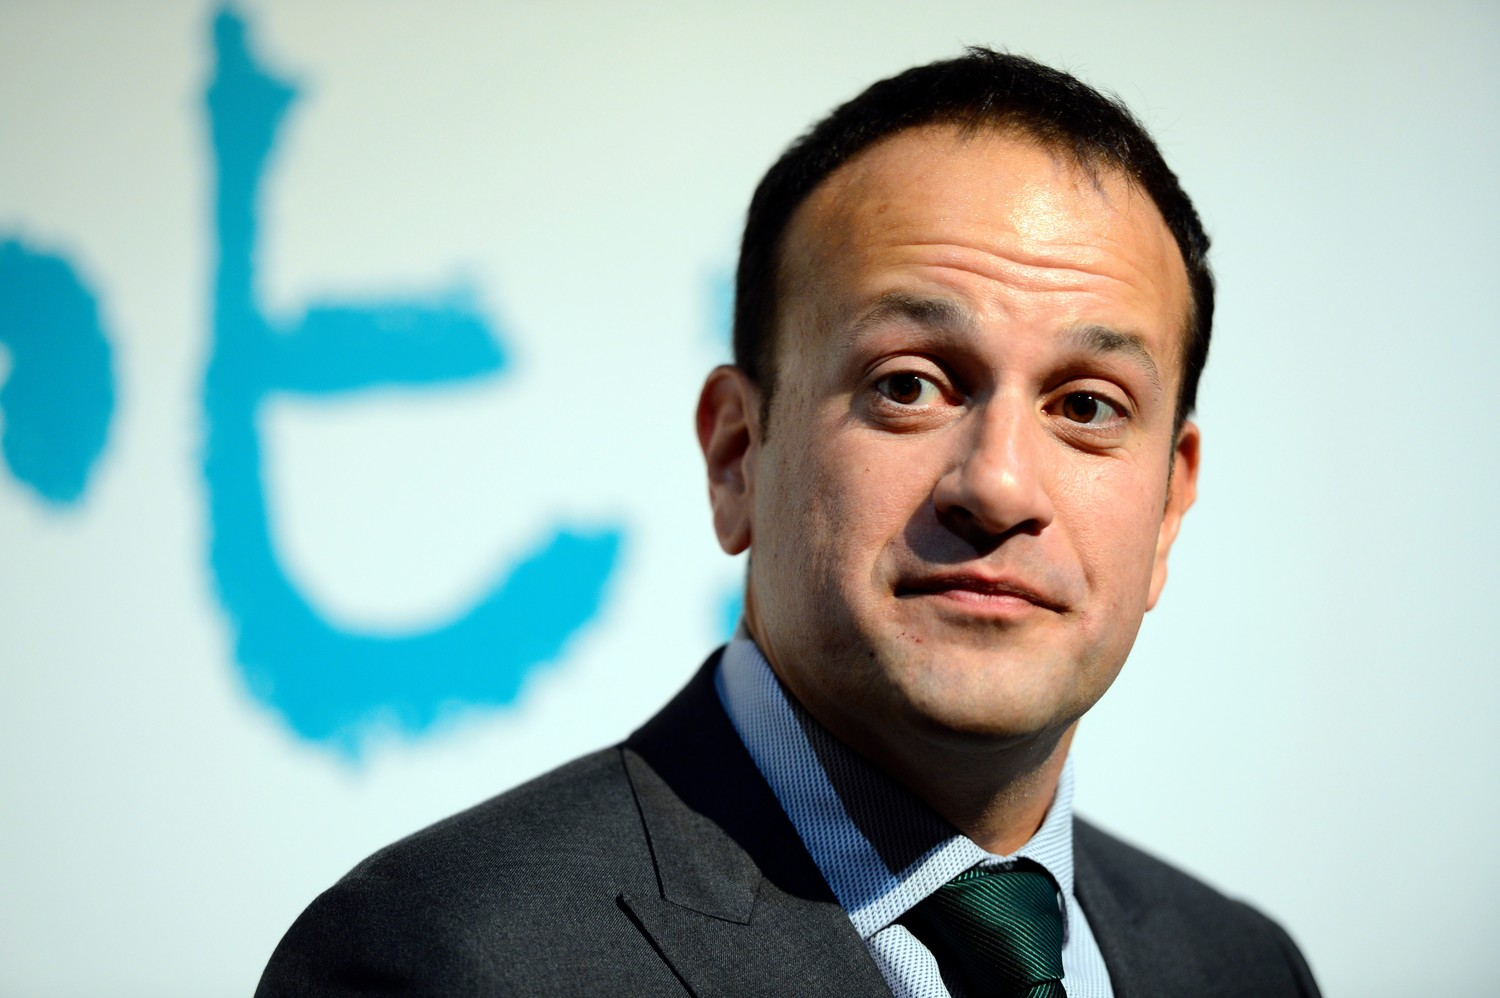 Leo Varadkar. Picture by The Irish Times.